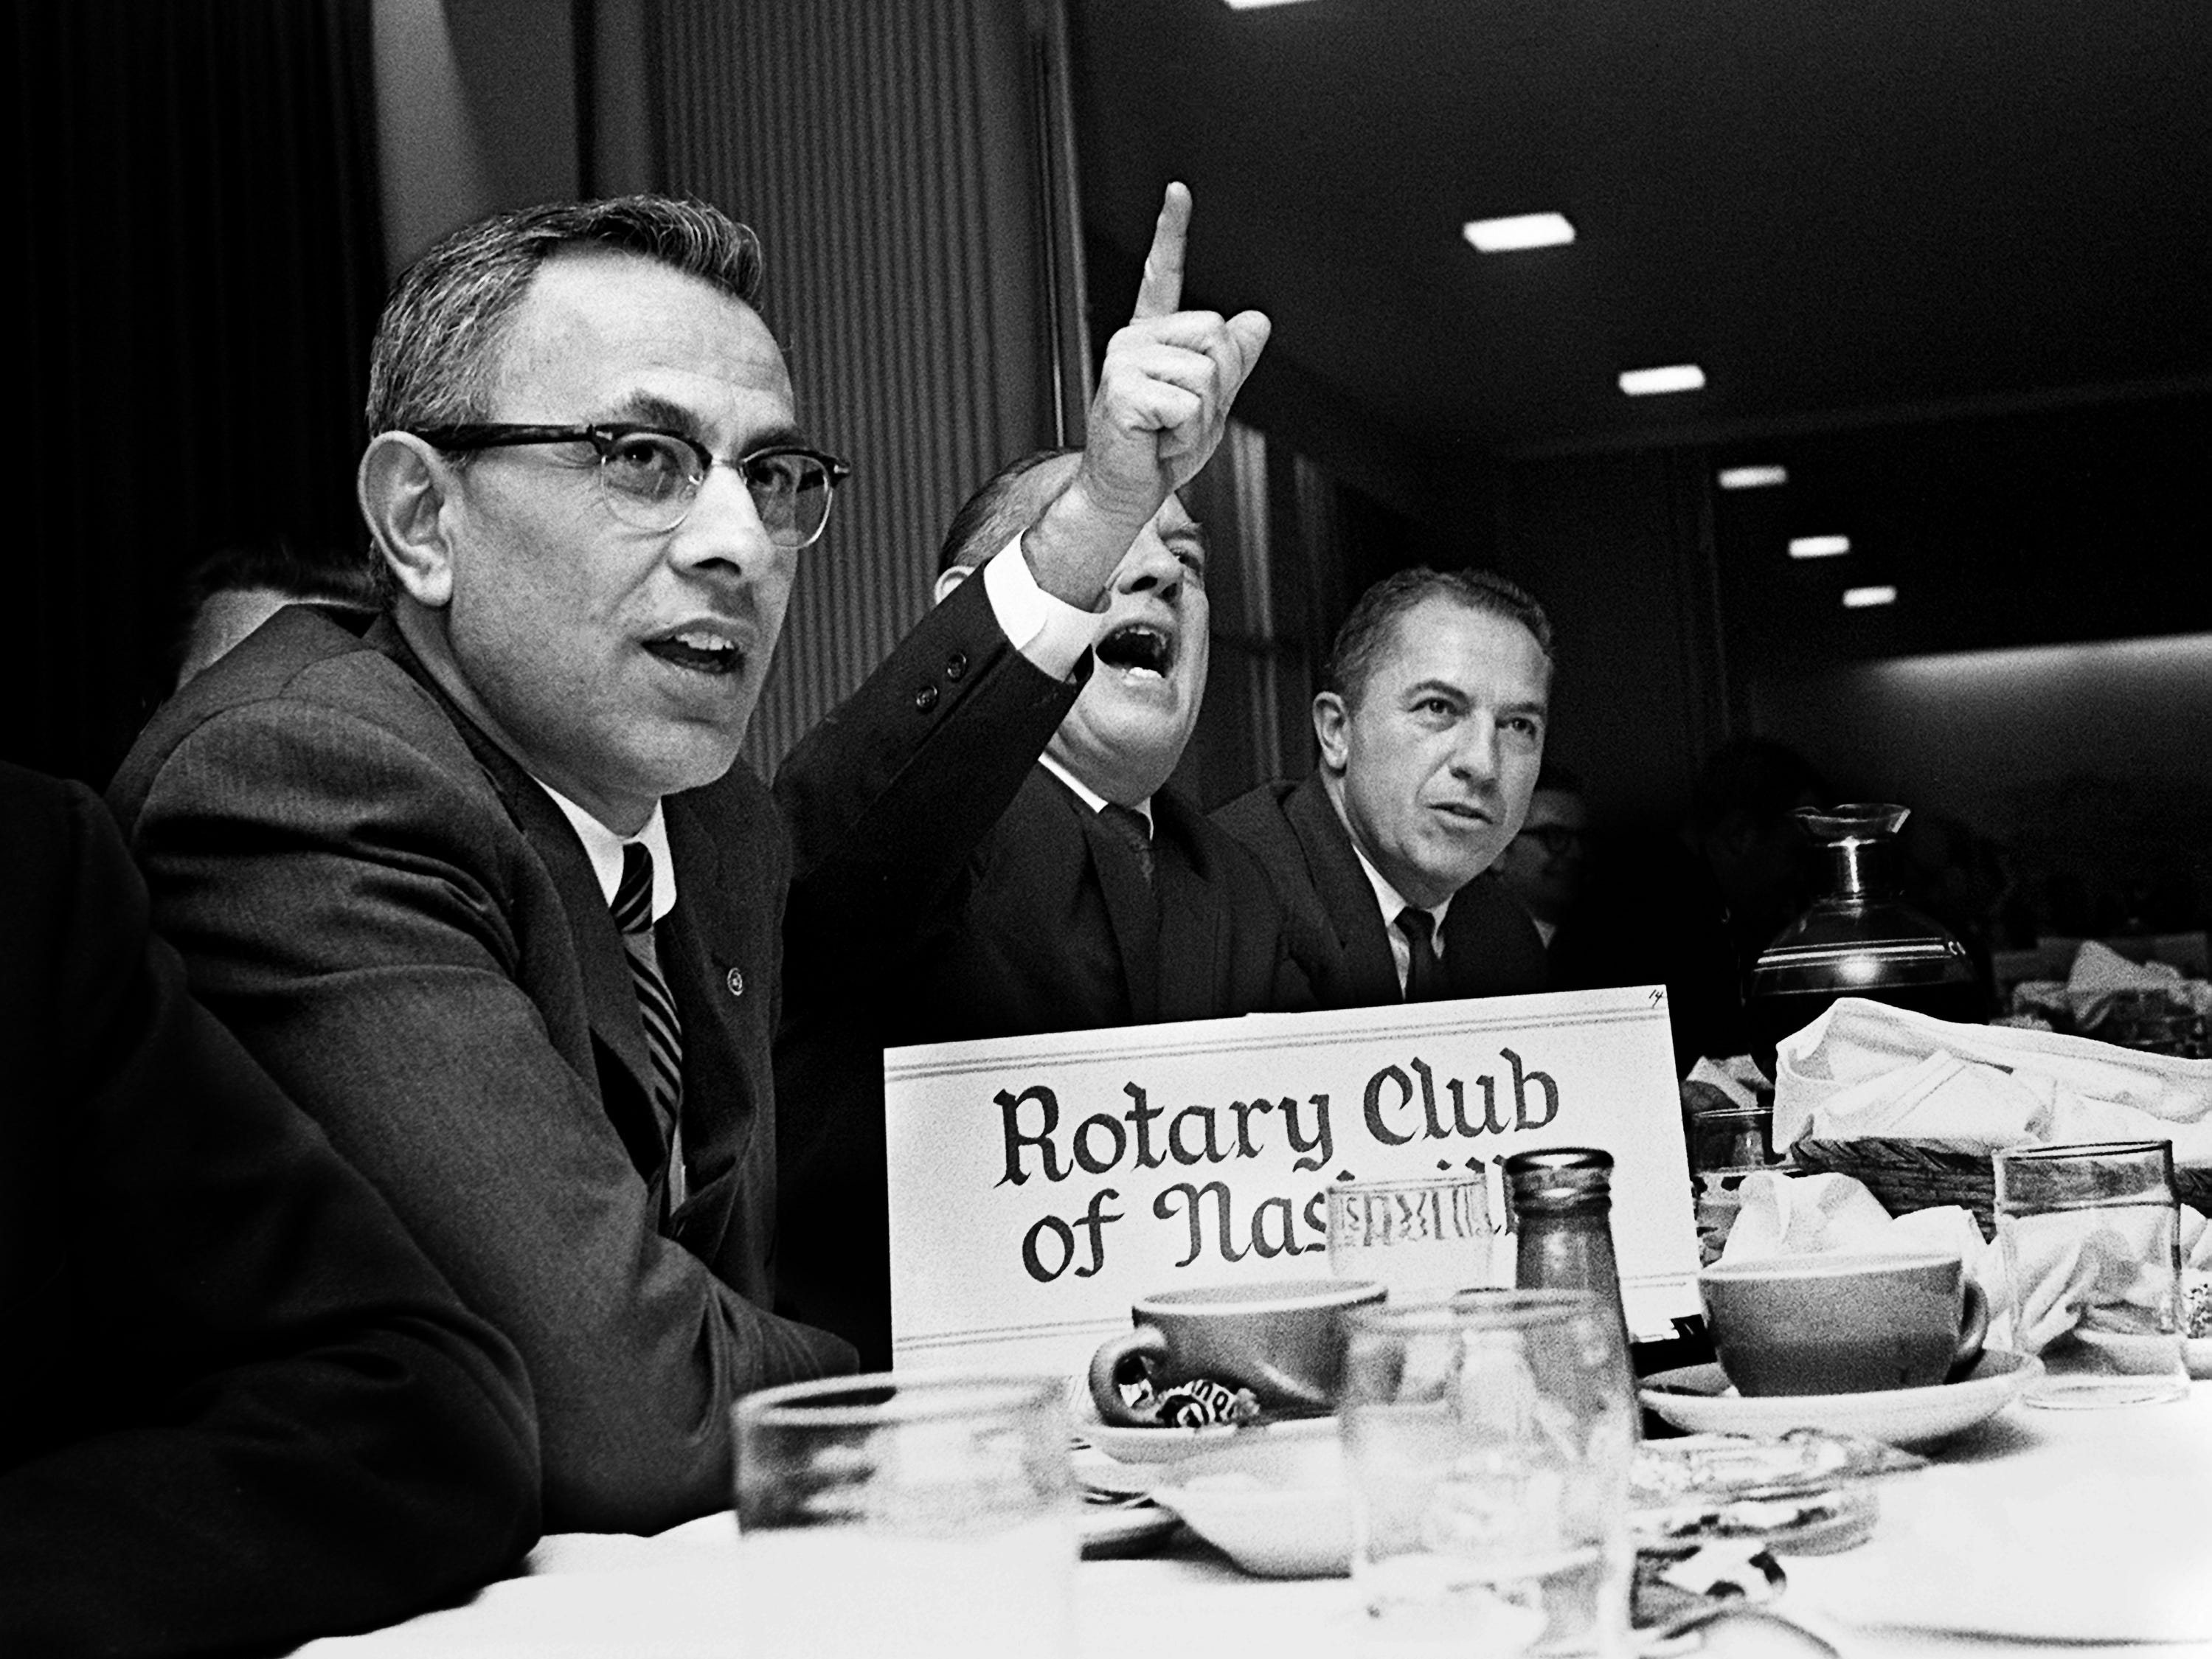 """""""Make it $5,000,"""" shouts Rotarian Club member Tom Summers, center, on his way to a """"$6,000 bid for the Glendale territory at the Big Brothers auction Dec. 9, 1968. Keeping an eye on the competition are fellow members Farris Deep, left, and Bill Krauth."""